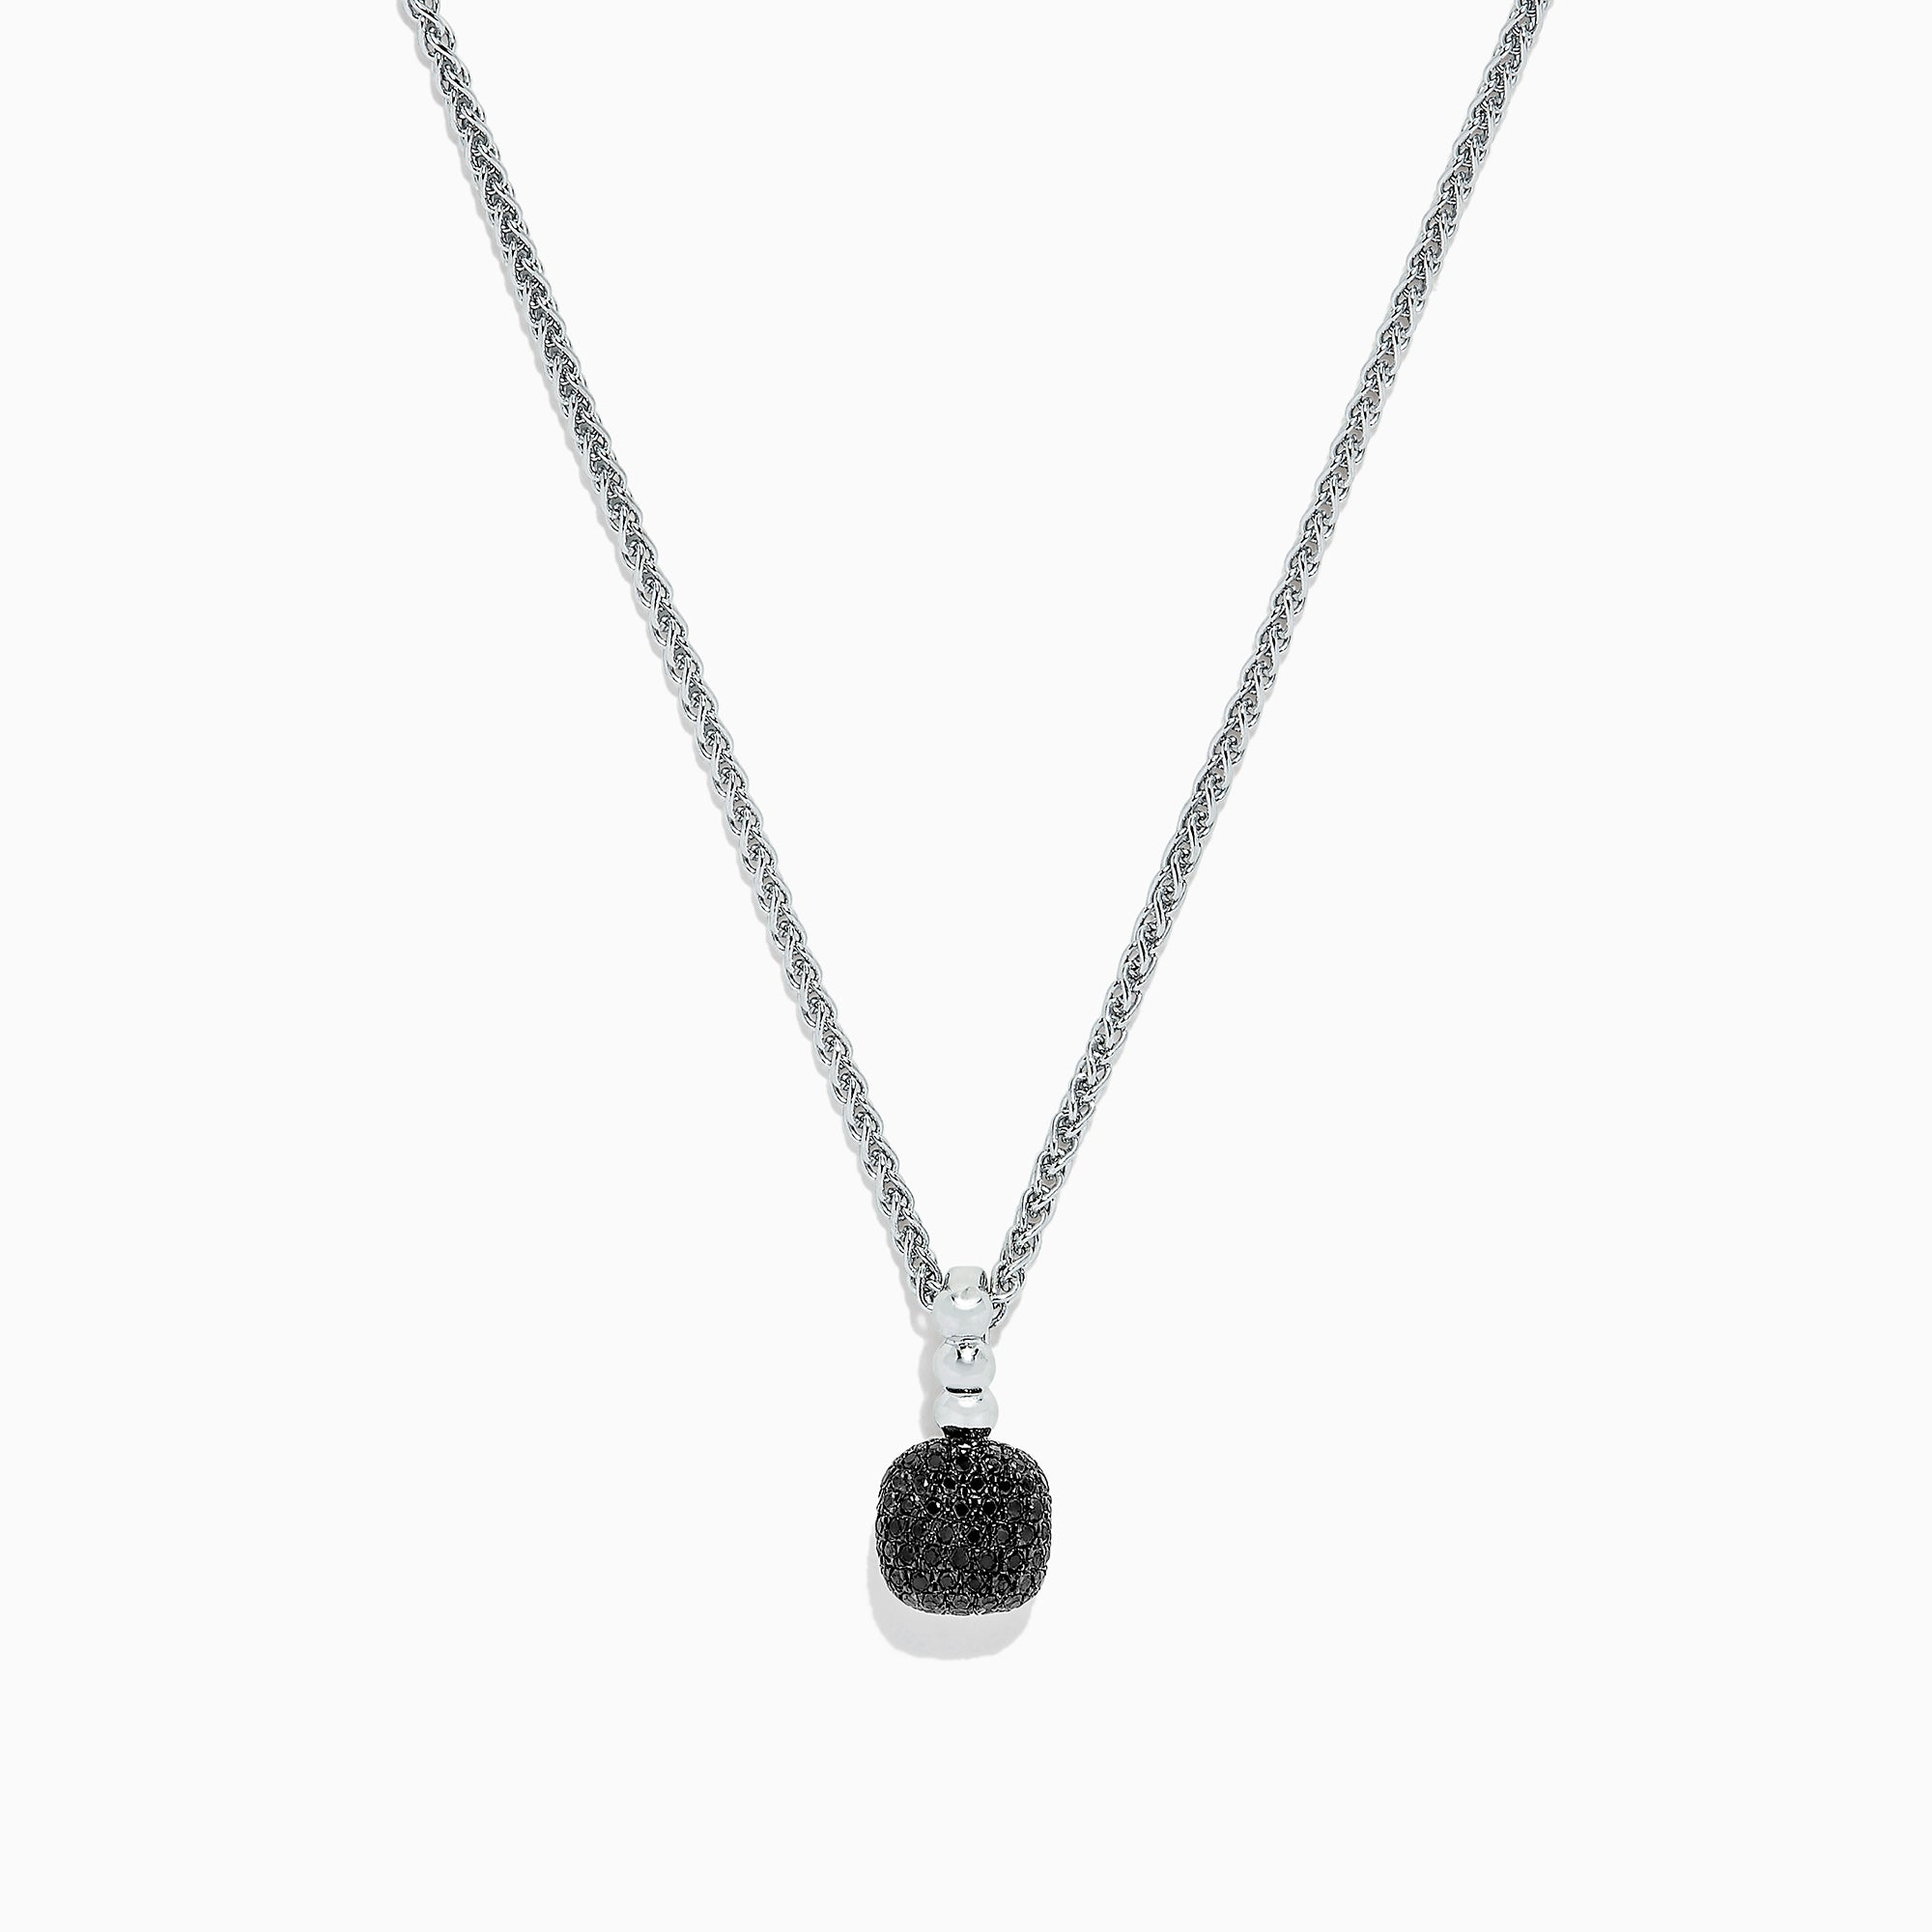 Effy 925 Sterling Silver Black Diamond Pendant, 0.21 TCW